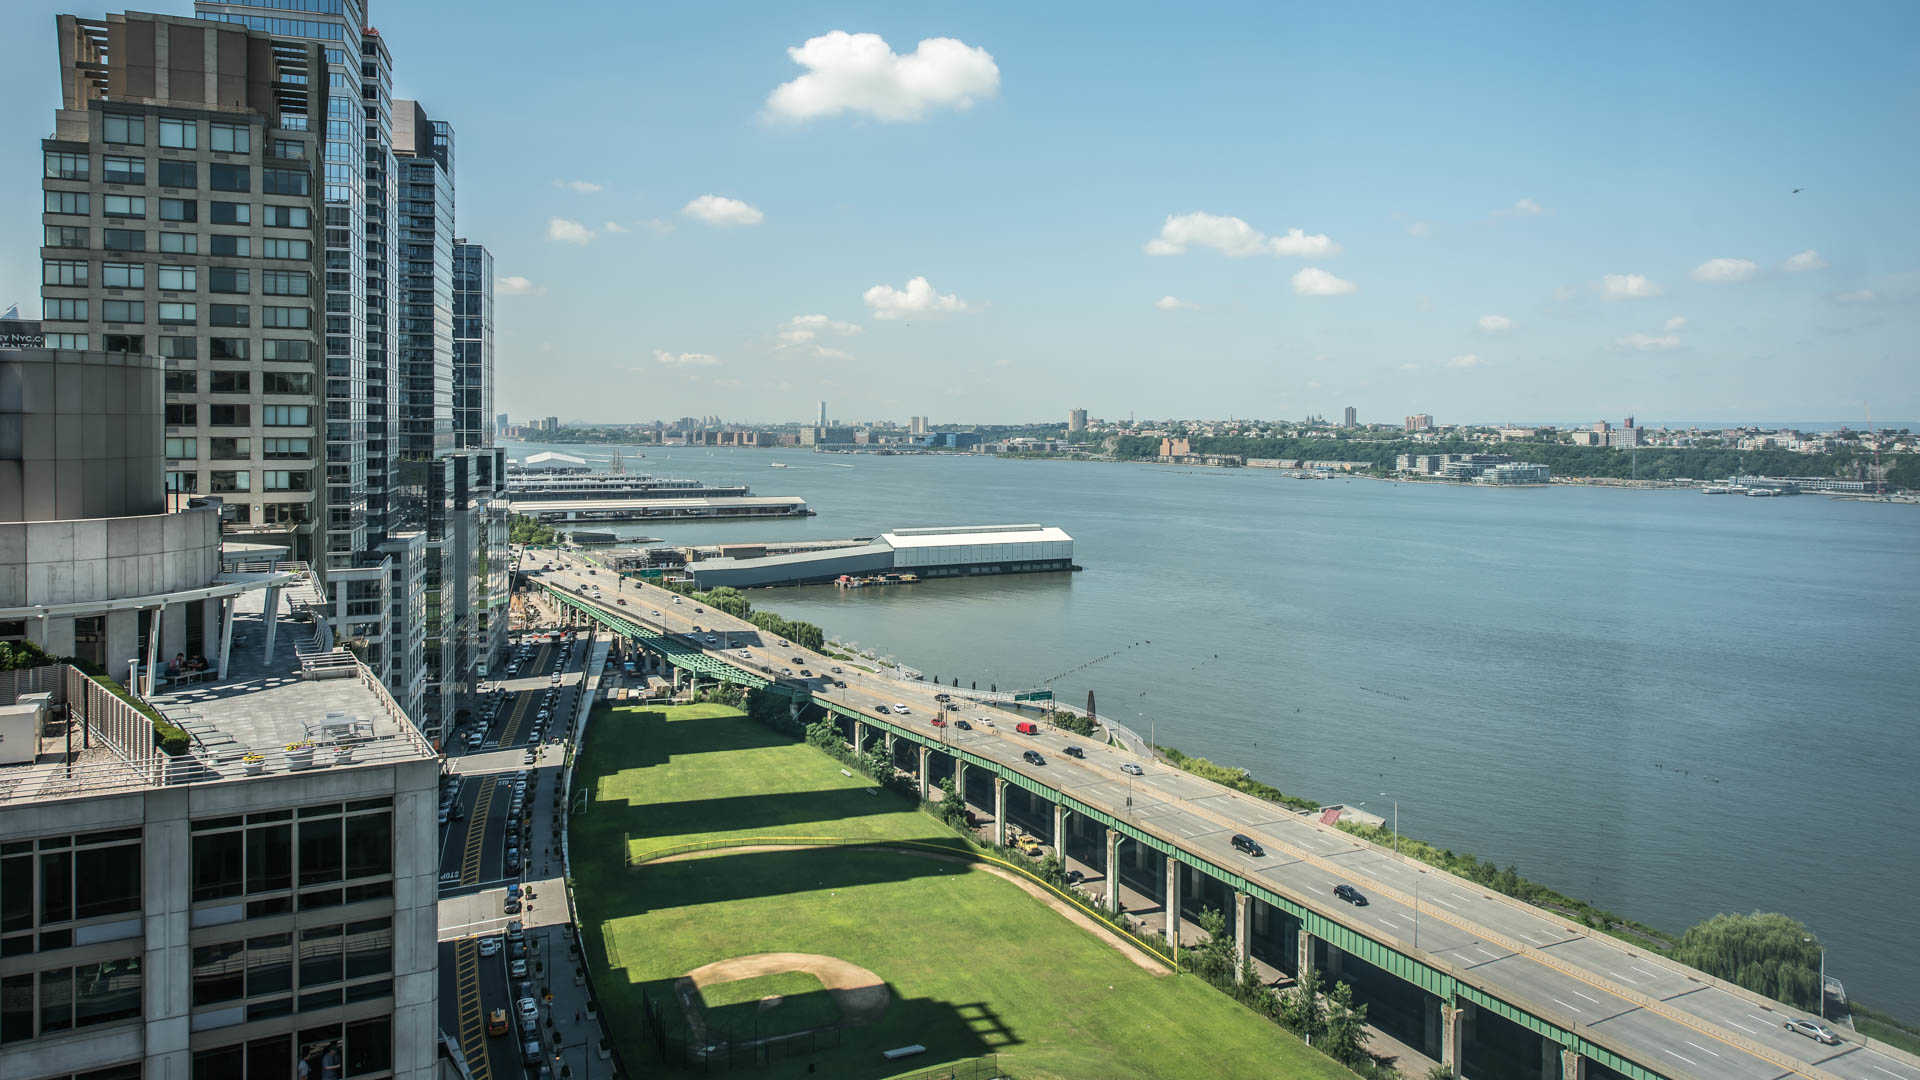 Views of the Hudson River